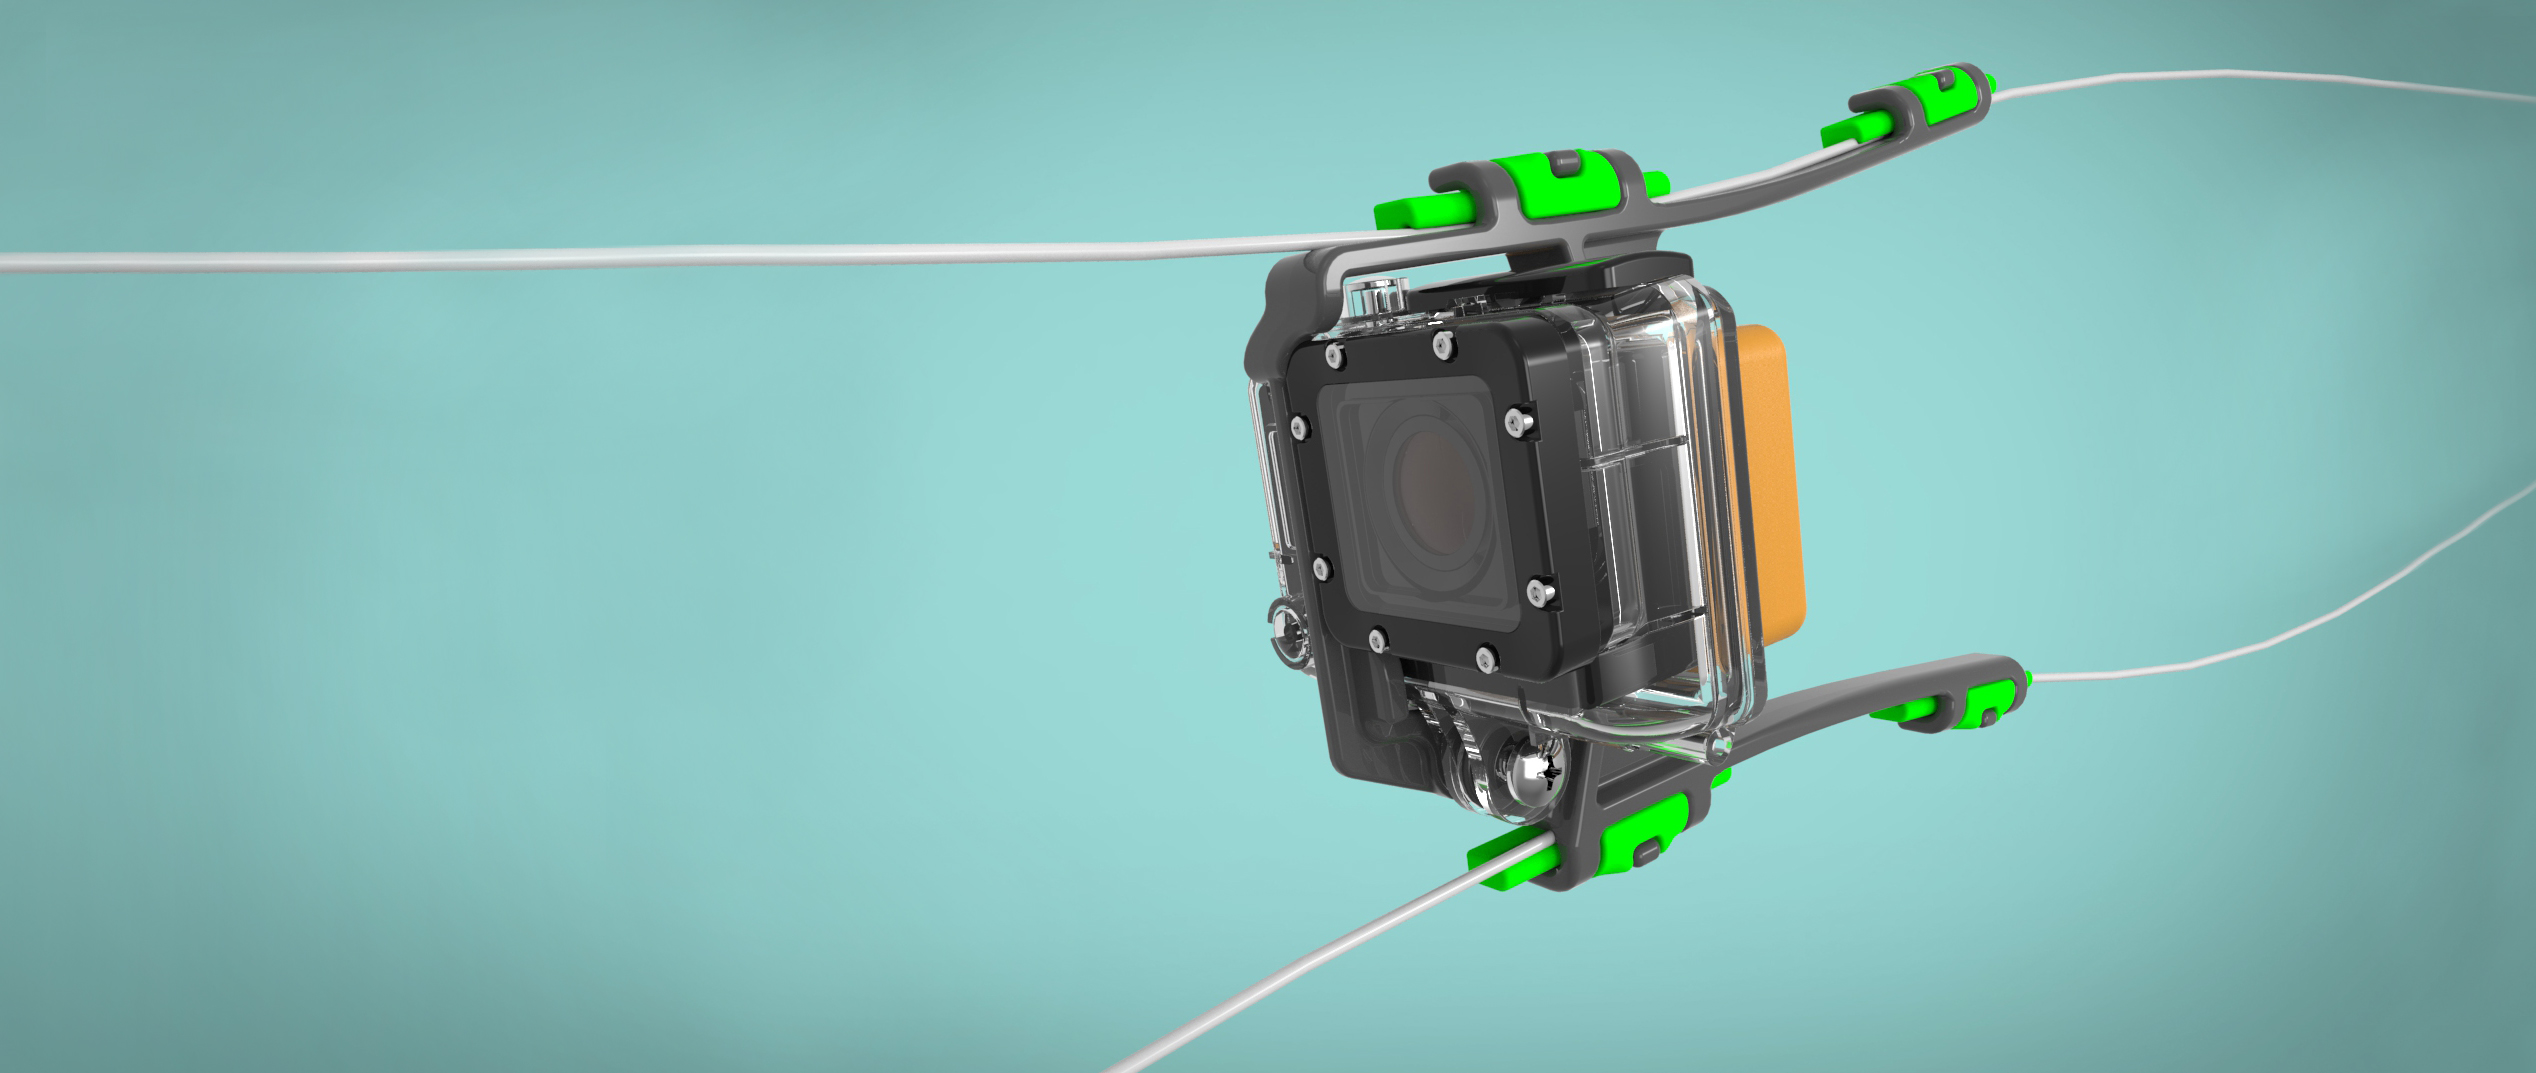 GoPro Mount Designed for Camrig Kiteboarding action sports market